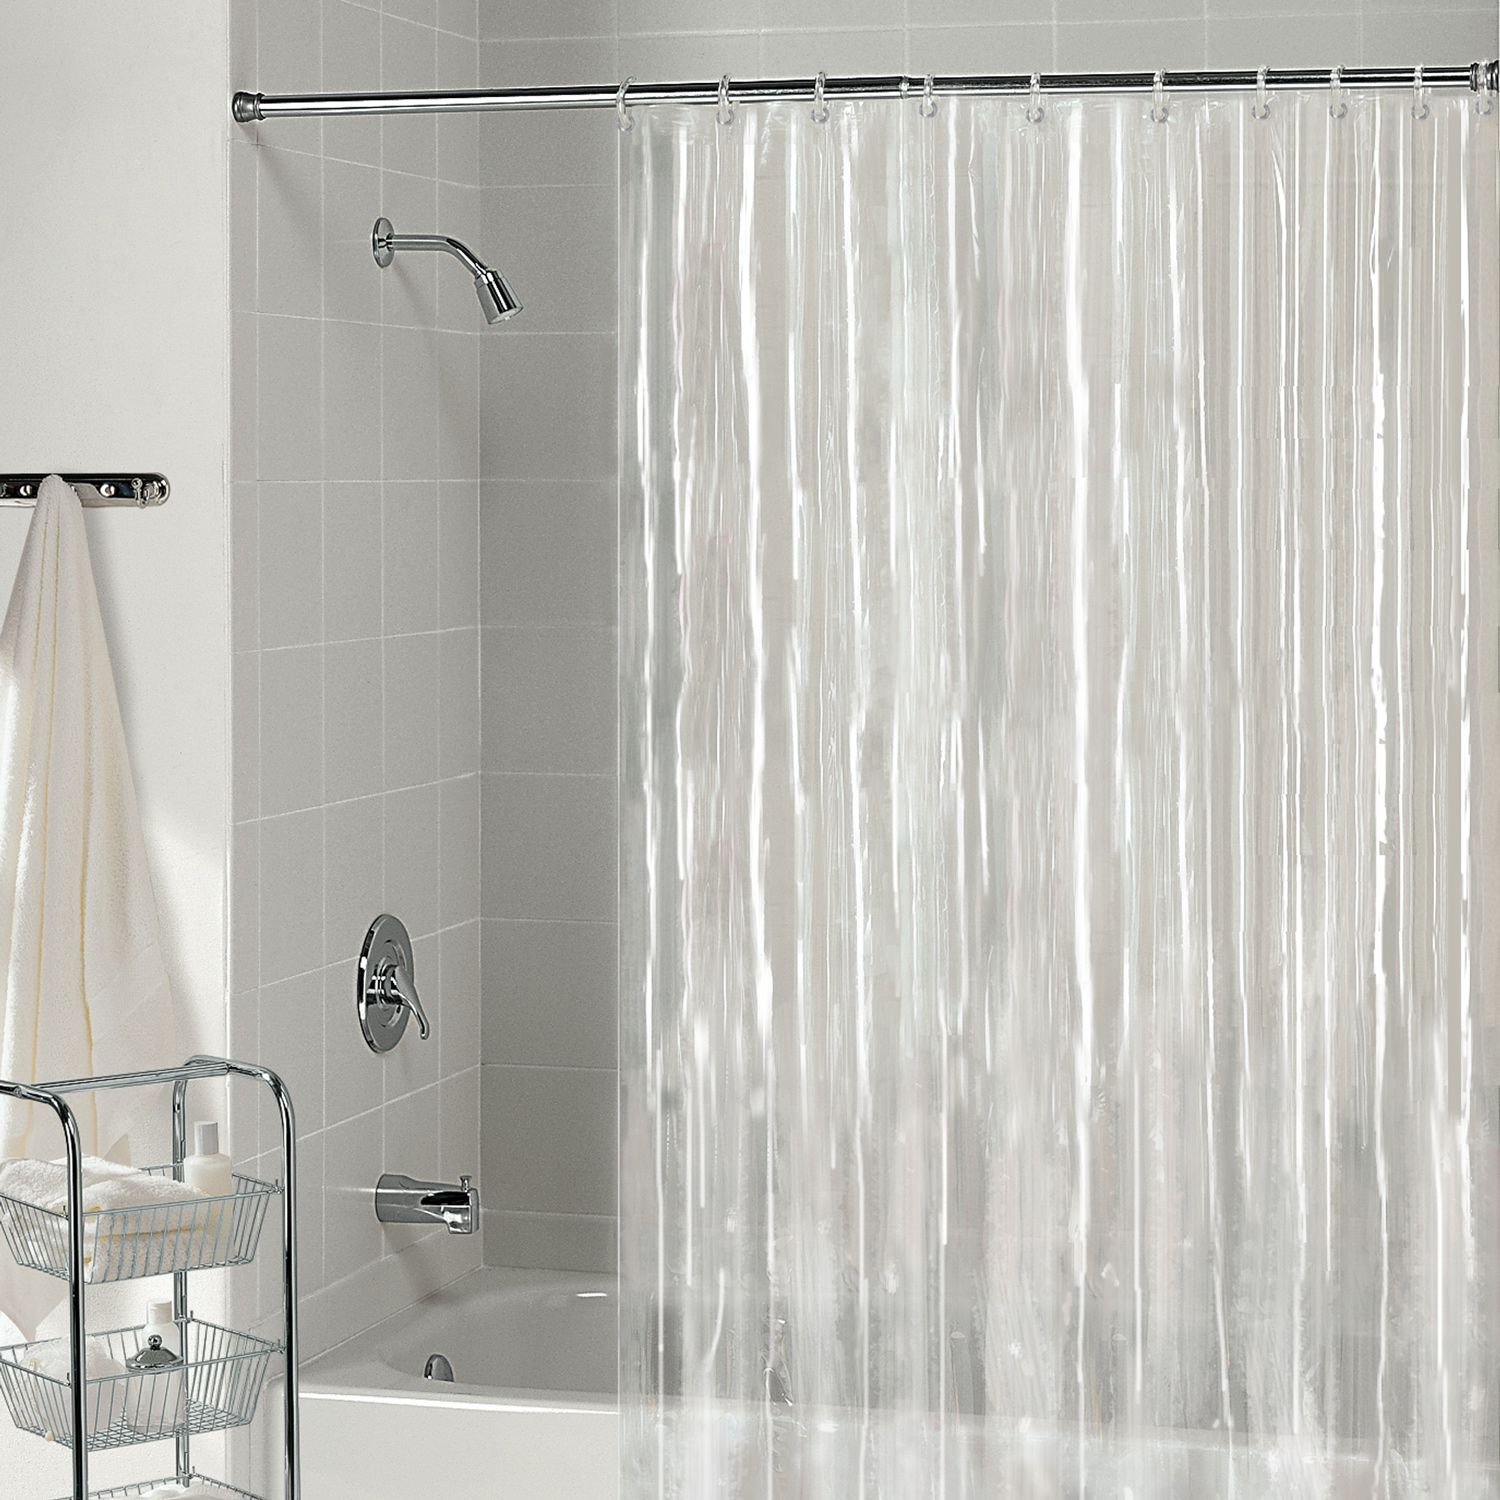 Bathroom Striped 96 Inch Shower Curtain For Bathroom Decoration Ideas throughout size 1500 X 1500